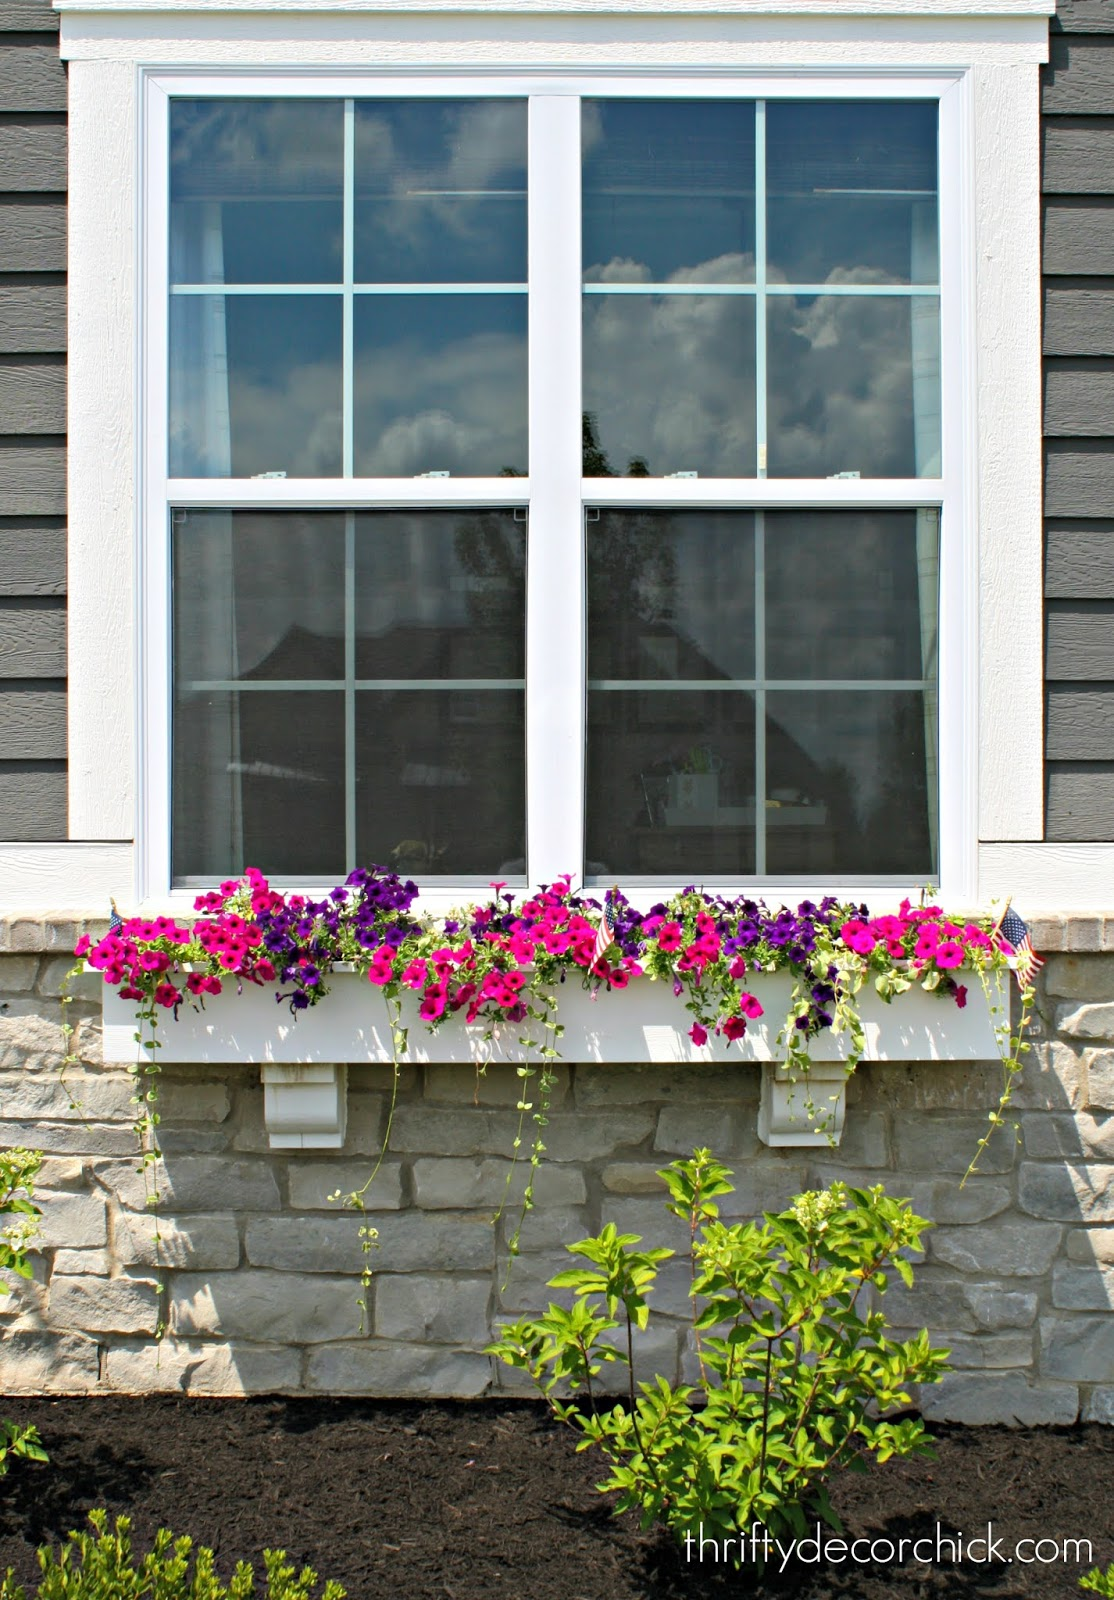 Spring/summer petunia window boxes